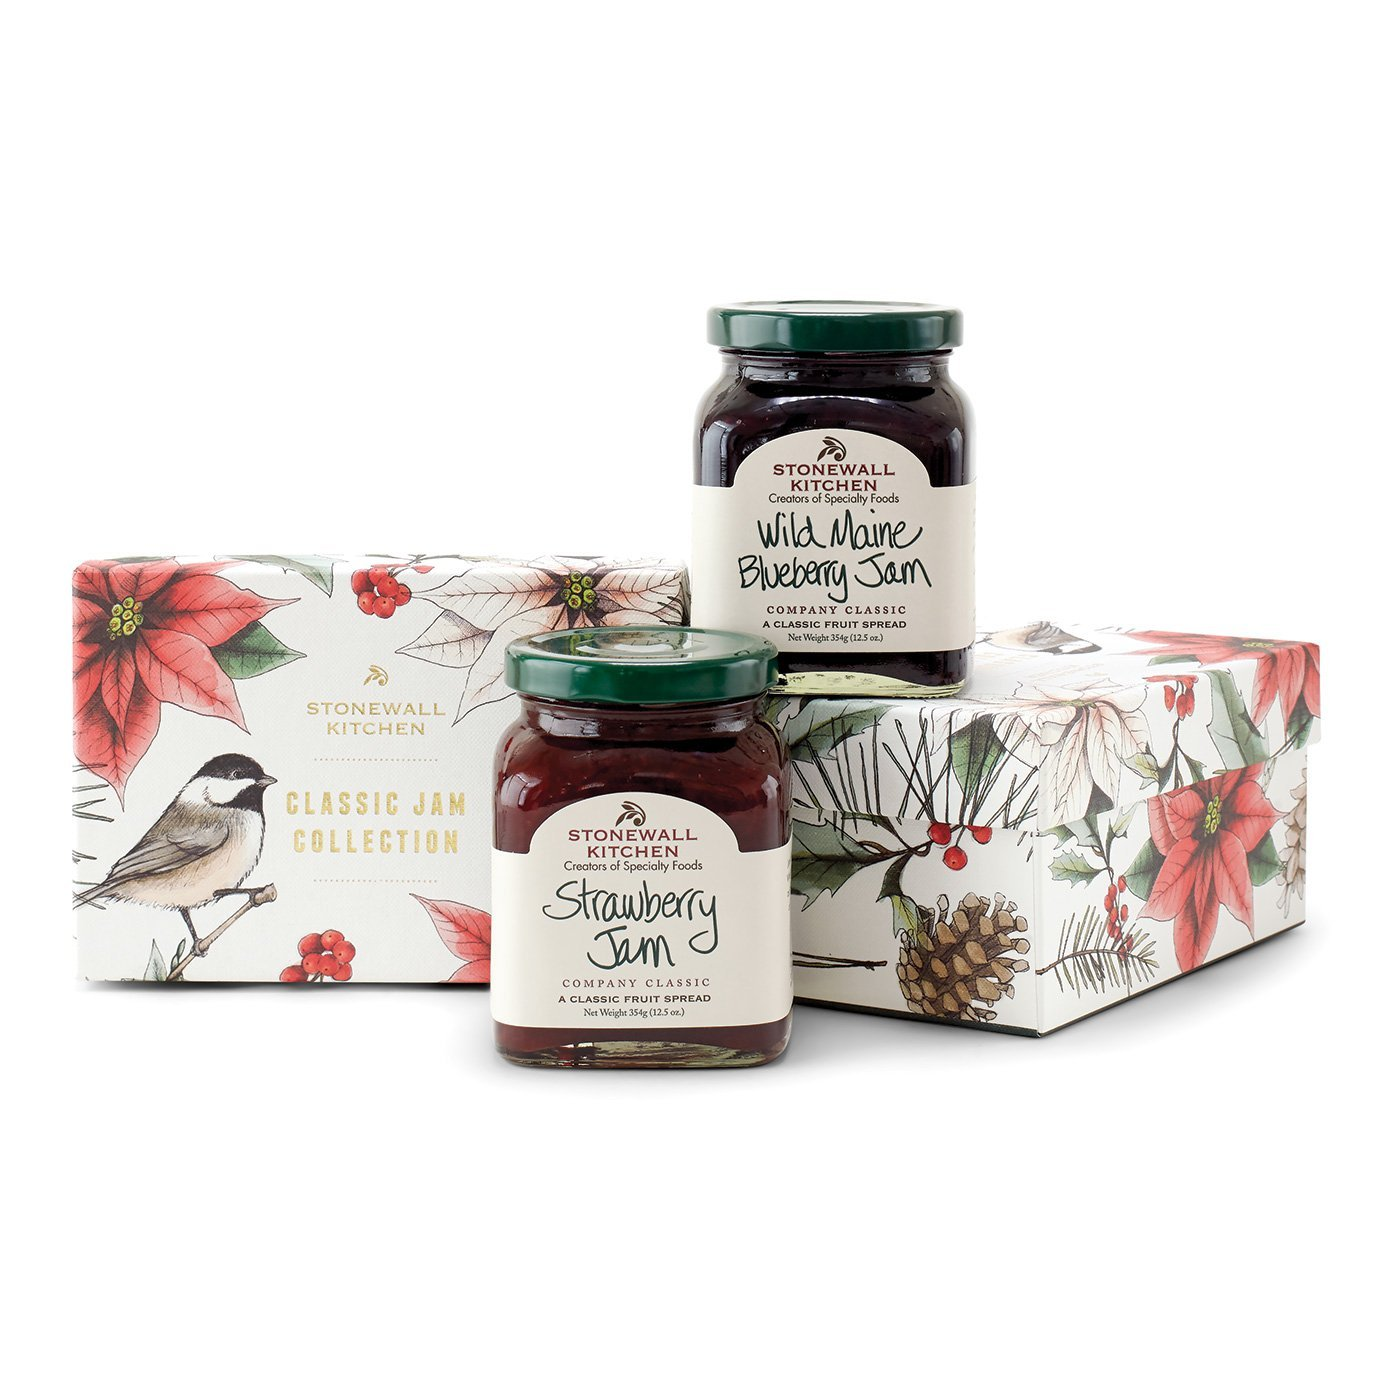 Stonewall Kitchen Holiday 2018 Classic Jam Collection